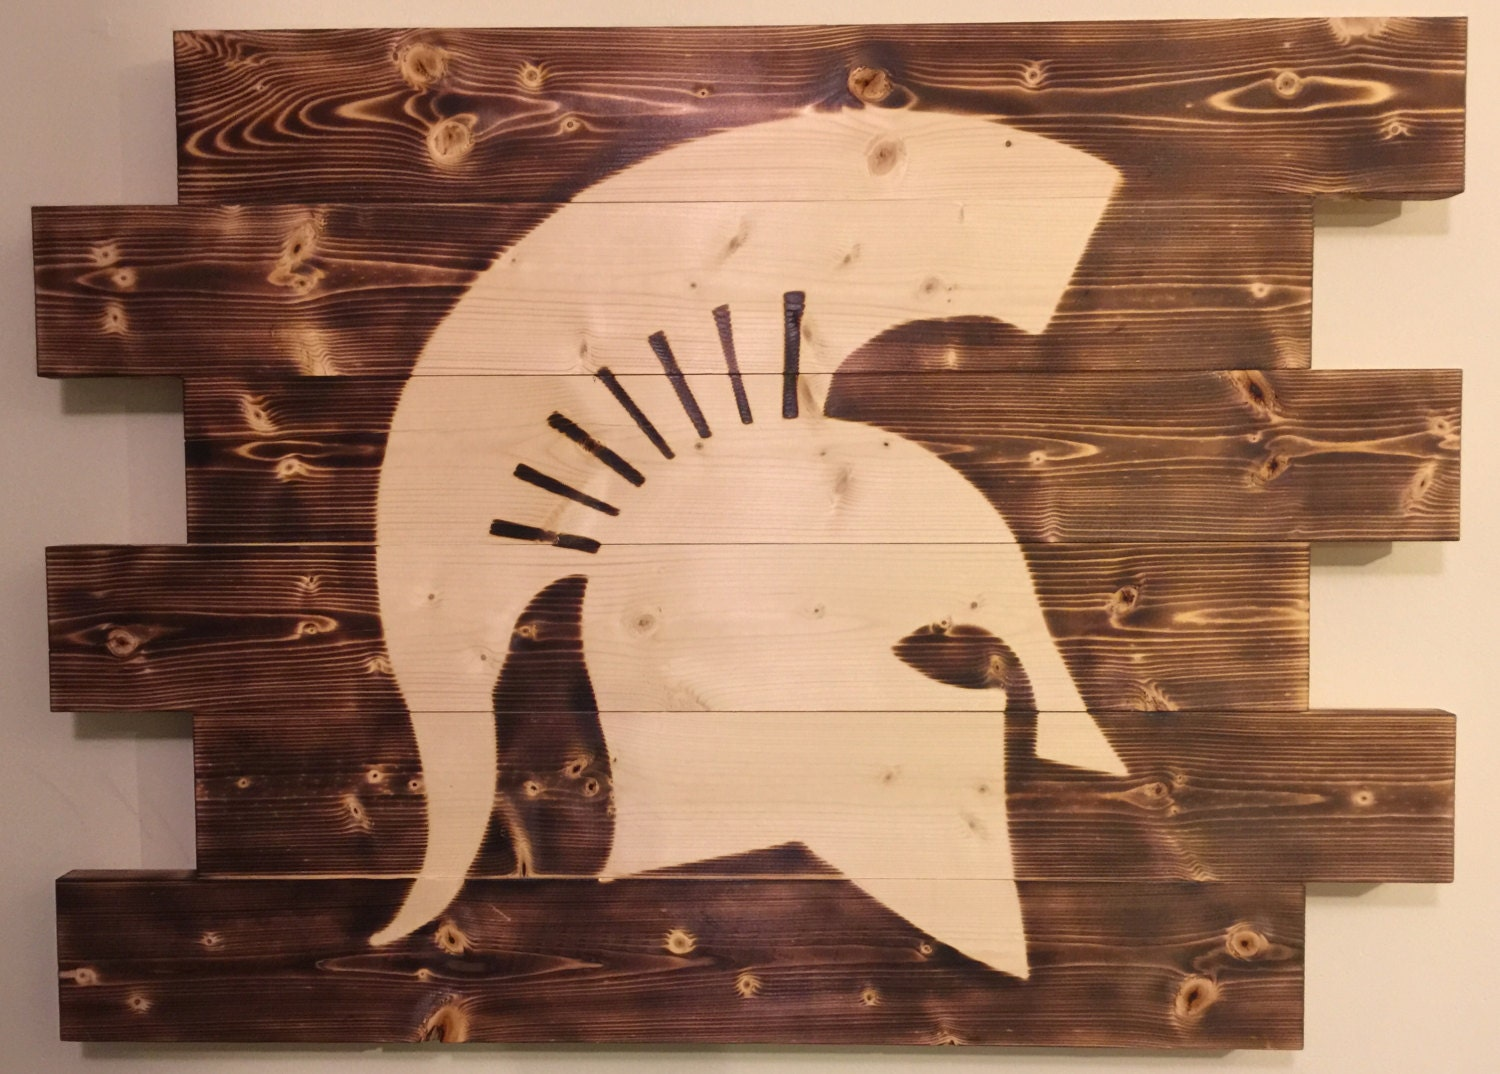 Man Cave Store In Michigan : Michigan state spartan football man cave wood sign